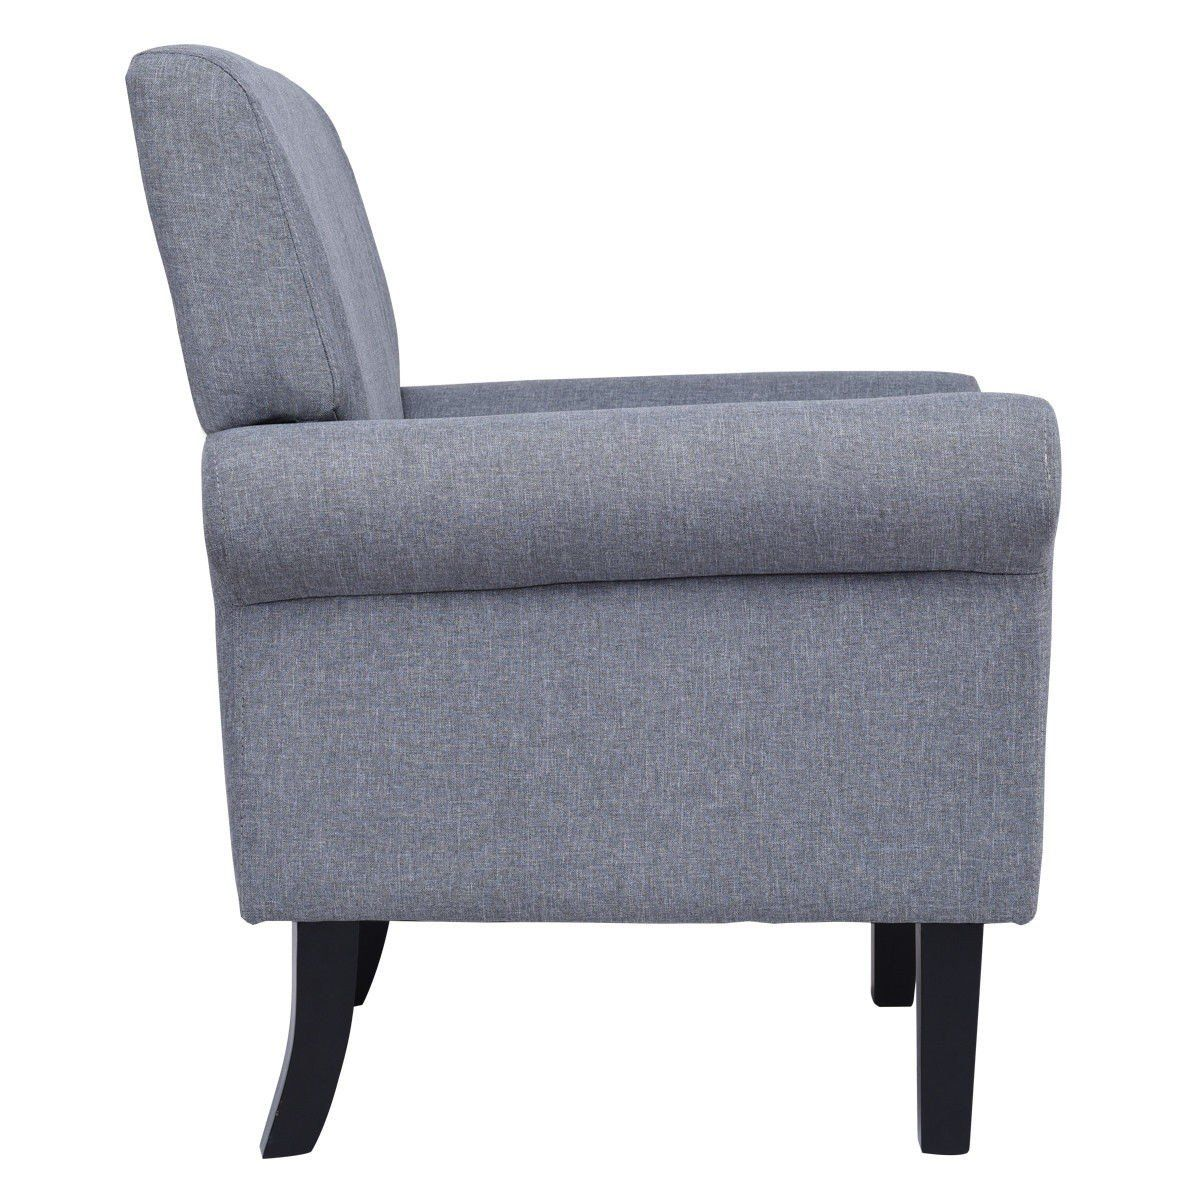 MyEasyShopping Sofa Club Lounge Loveseat Settee Chair Modern